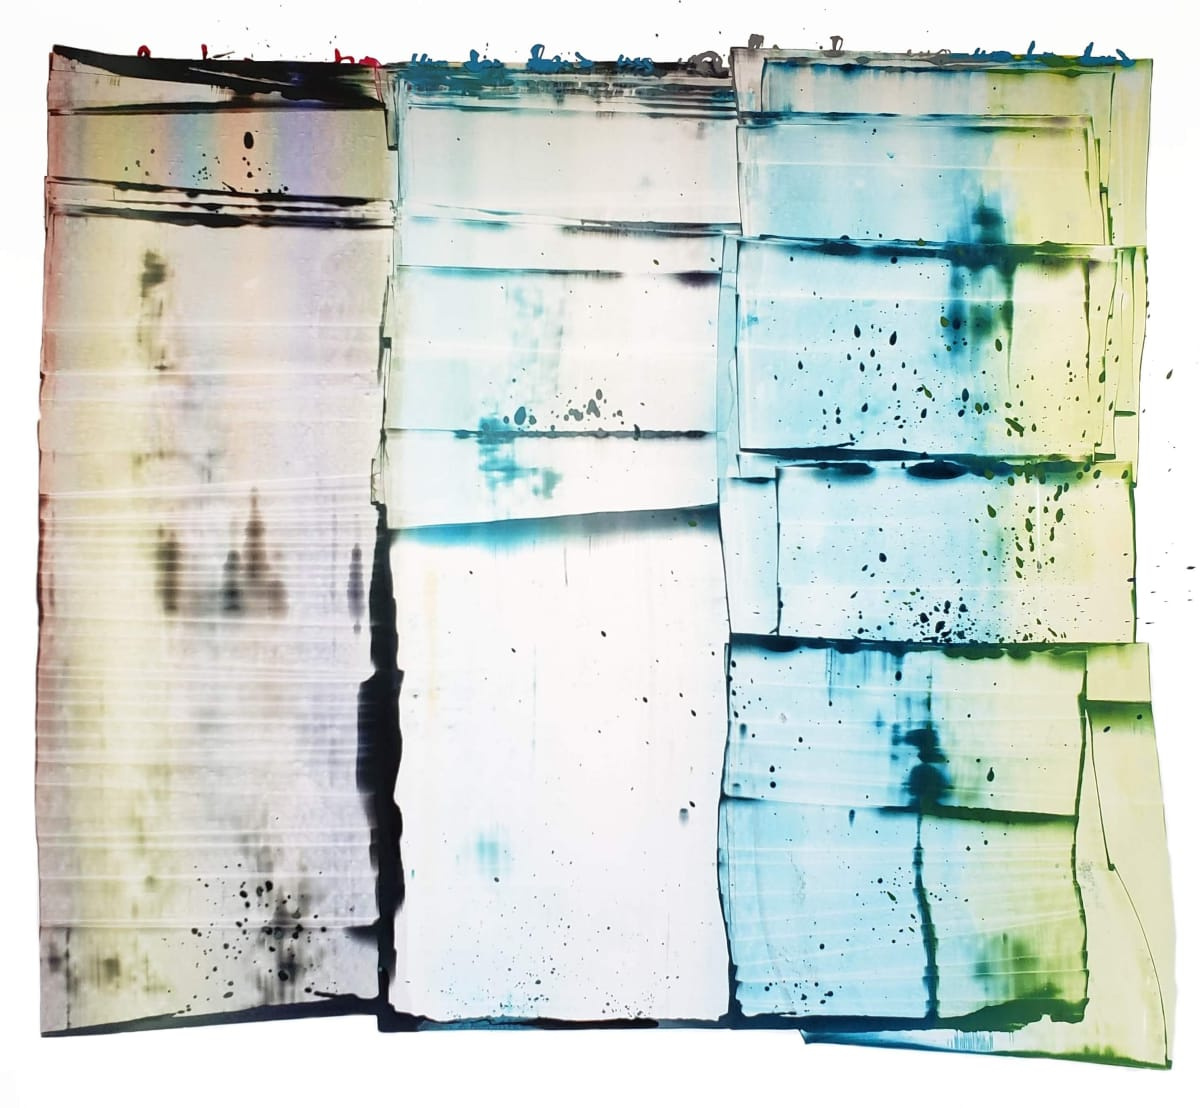 Abstract colorful ink painting by Sarah Irvin